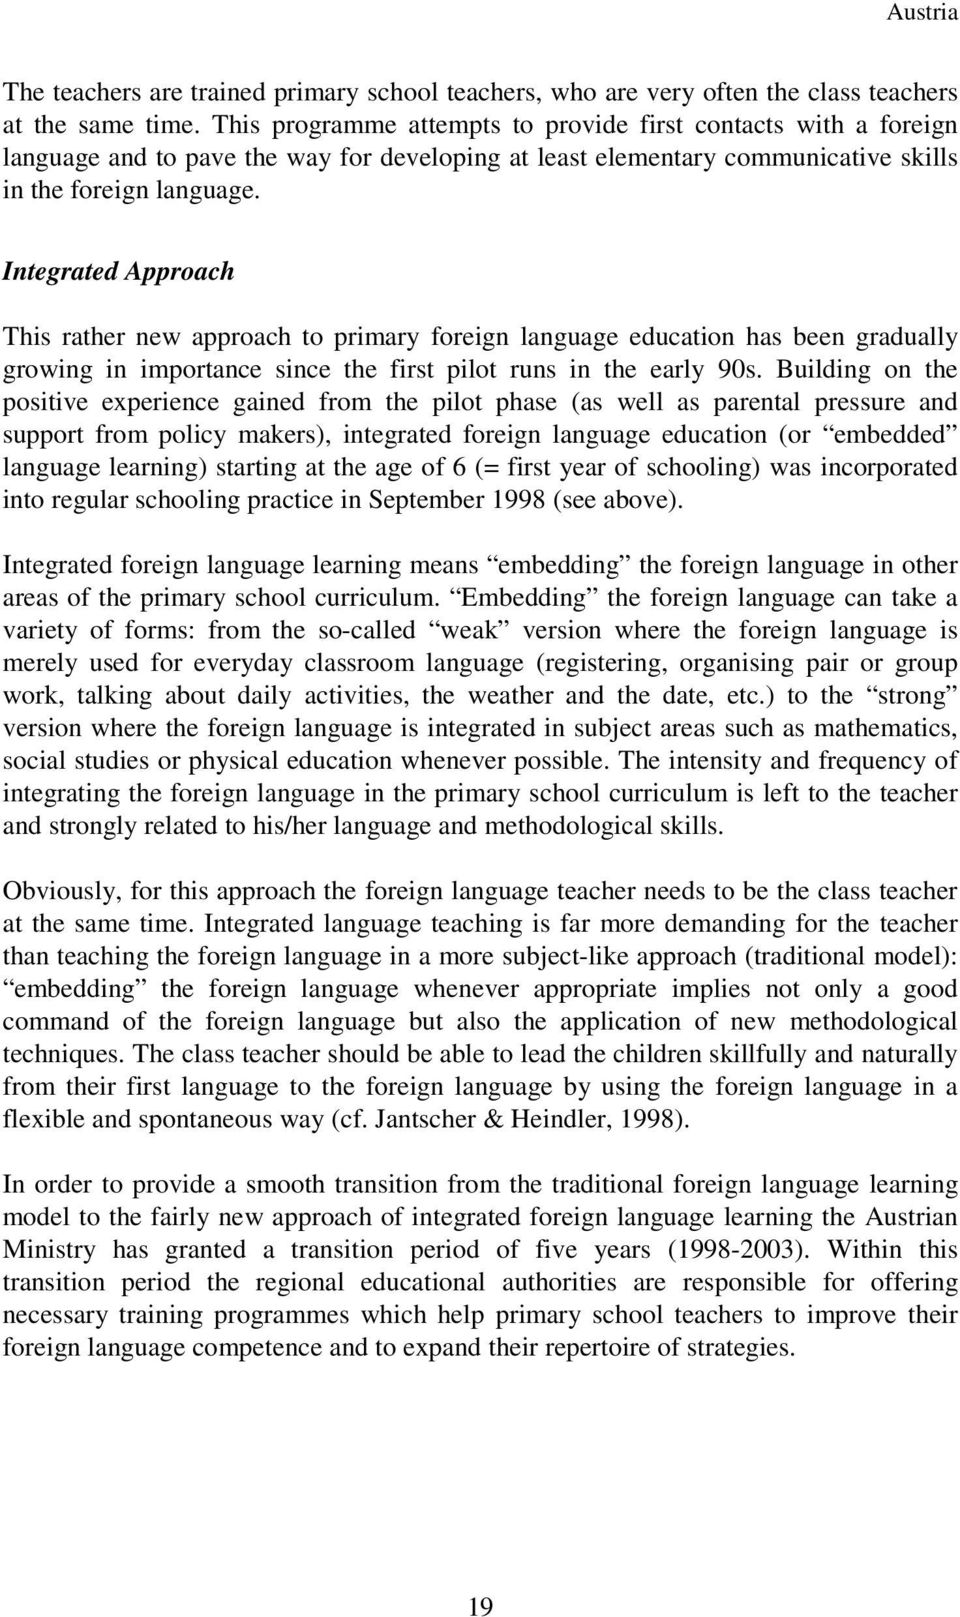 Integrated Approach This rather new approach to primary foreign language education has been gradually growing in importance since the first pilot runs in the early 90s.